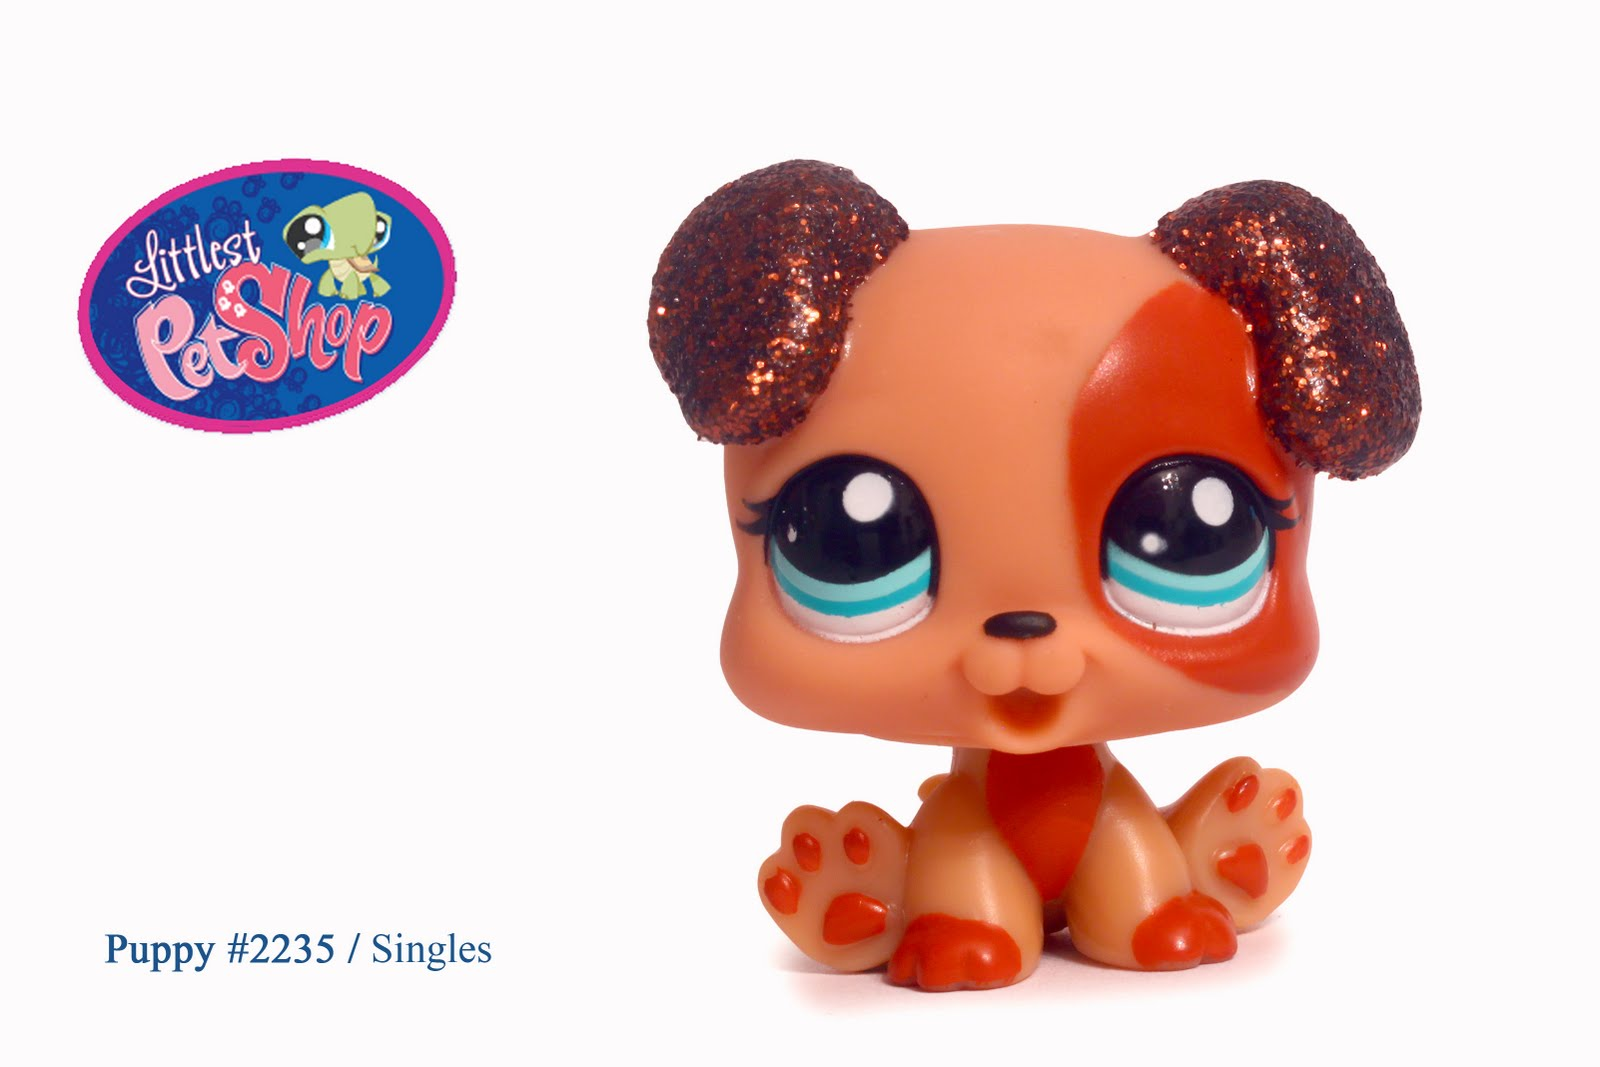 lps rule images cute puppy hd wallpaper and background